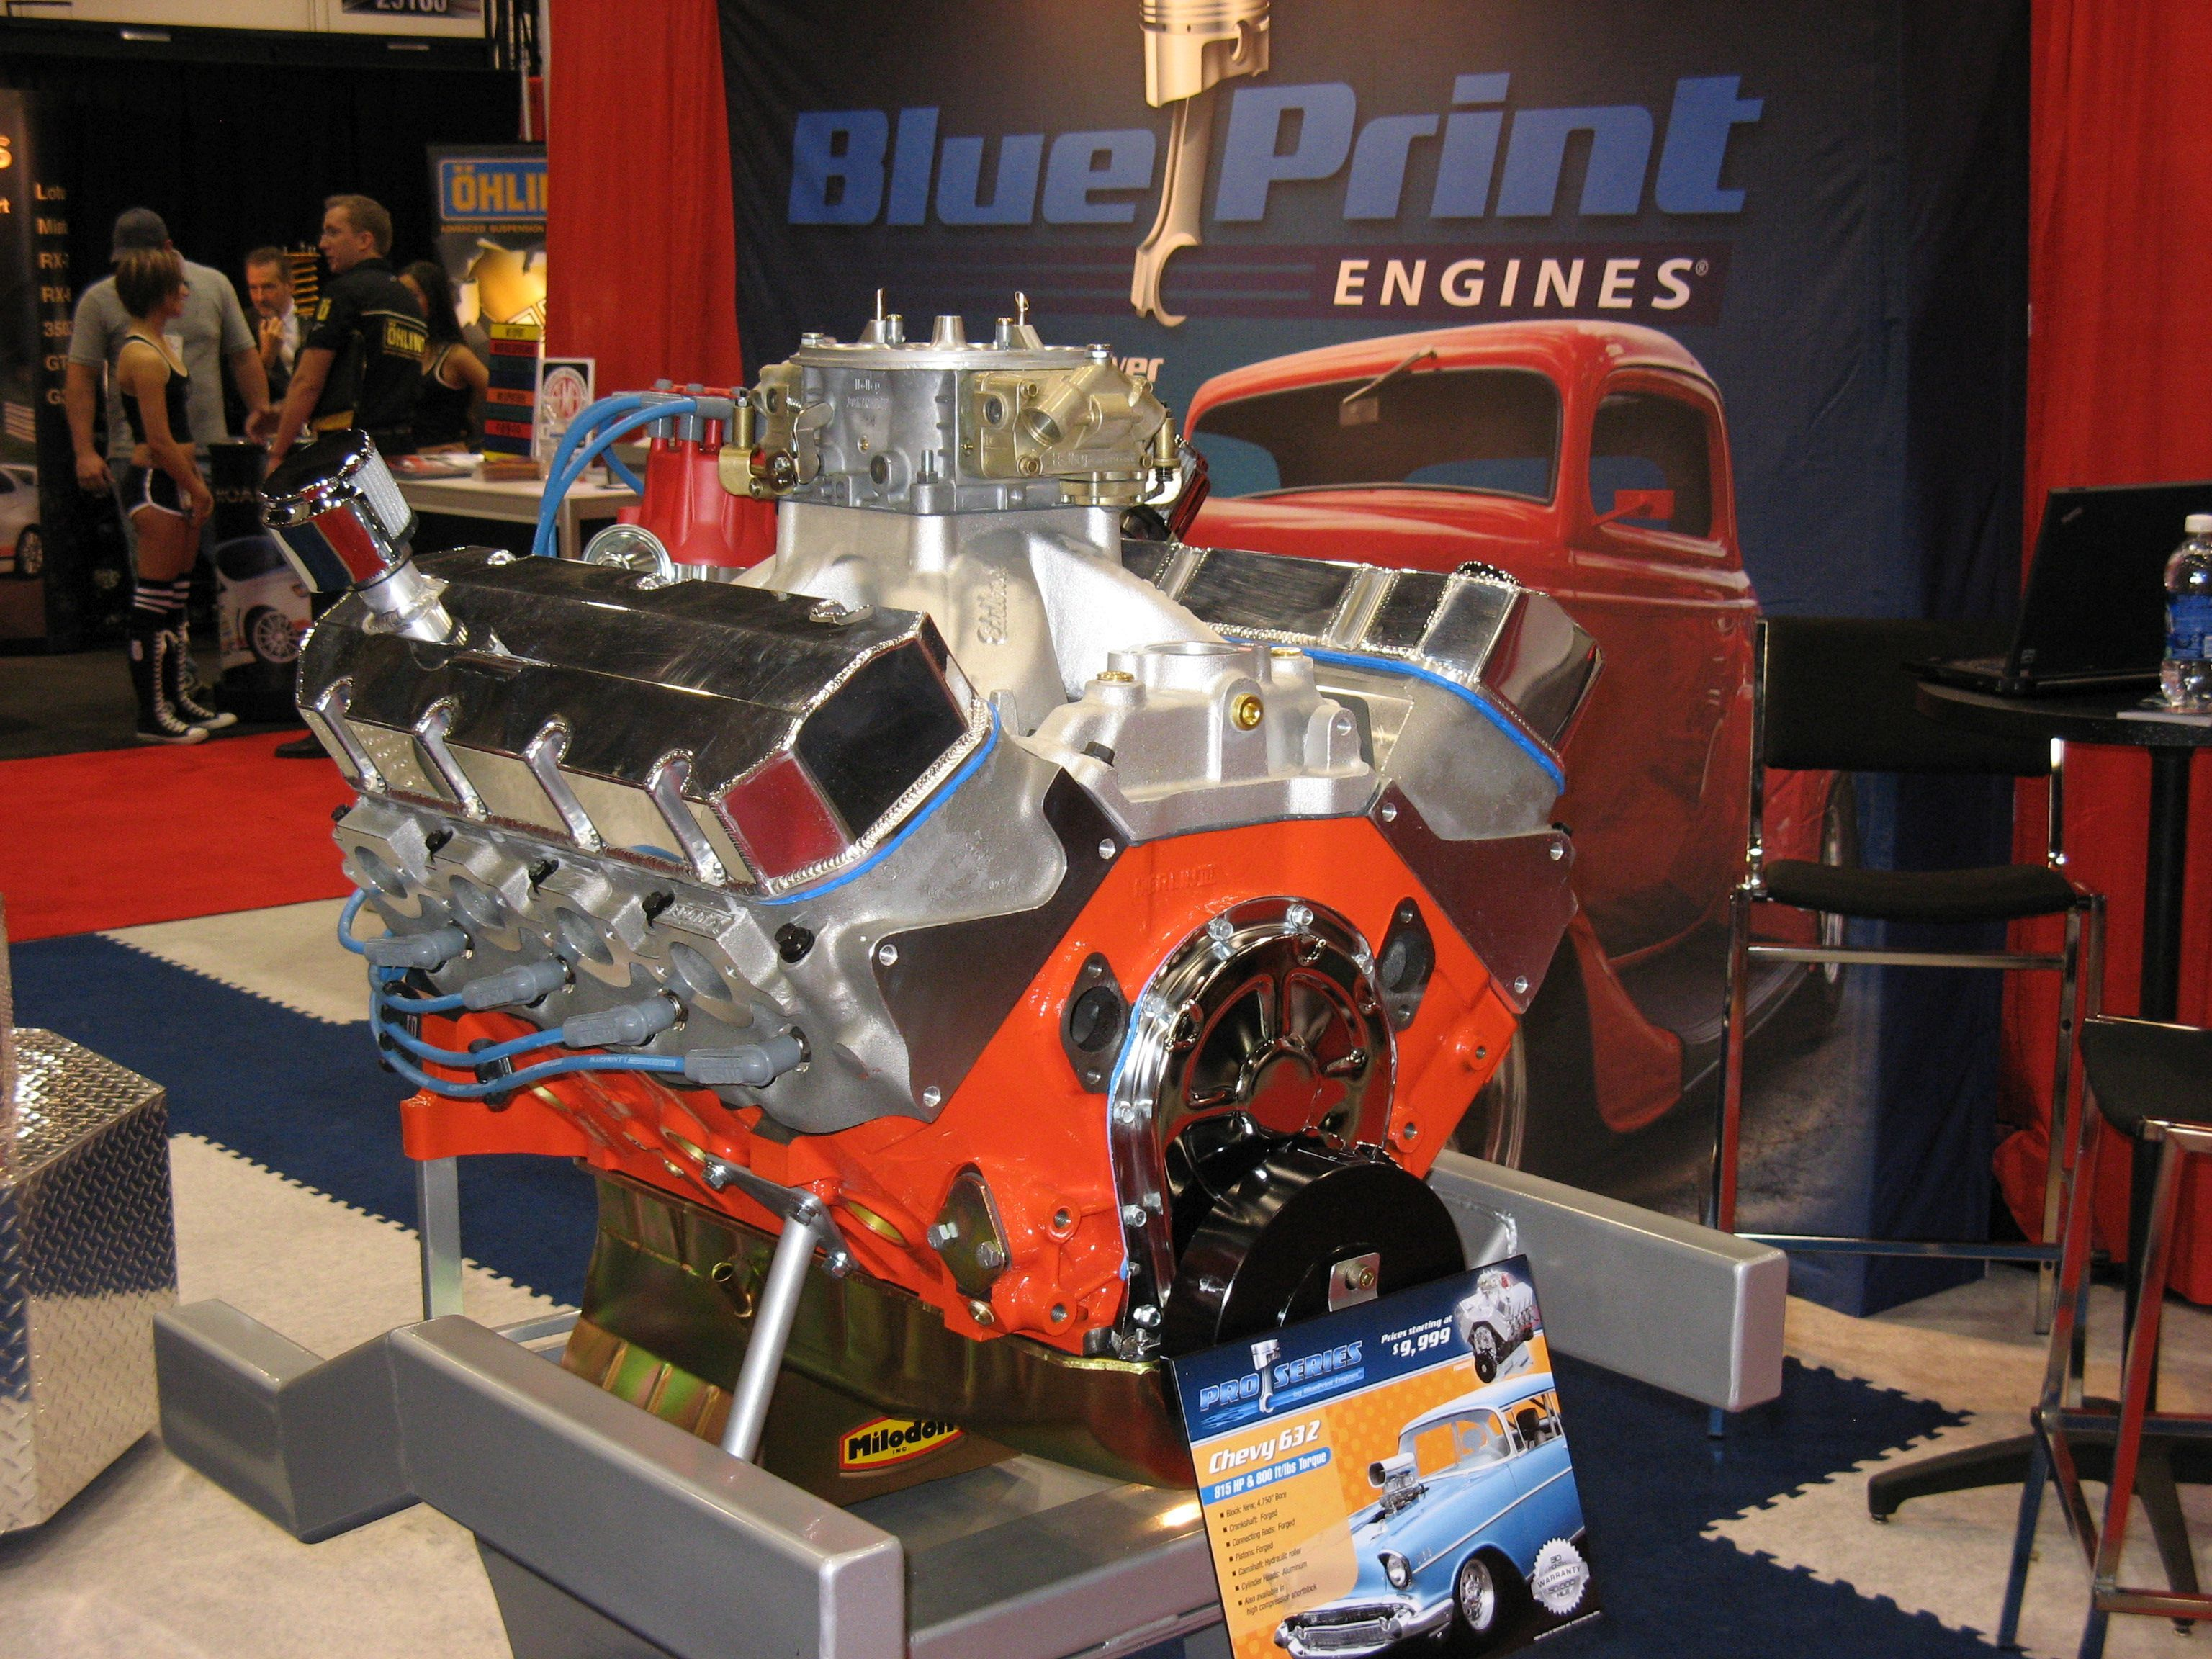 Machined and ready to go blueprint engines now offers a chevy big machined and ready to go blueprint engines now offers a chevy big block available in 4250 bore and up to 4600 bore in standard 98 deck heig malvernweather Choice Image